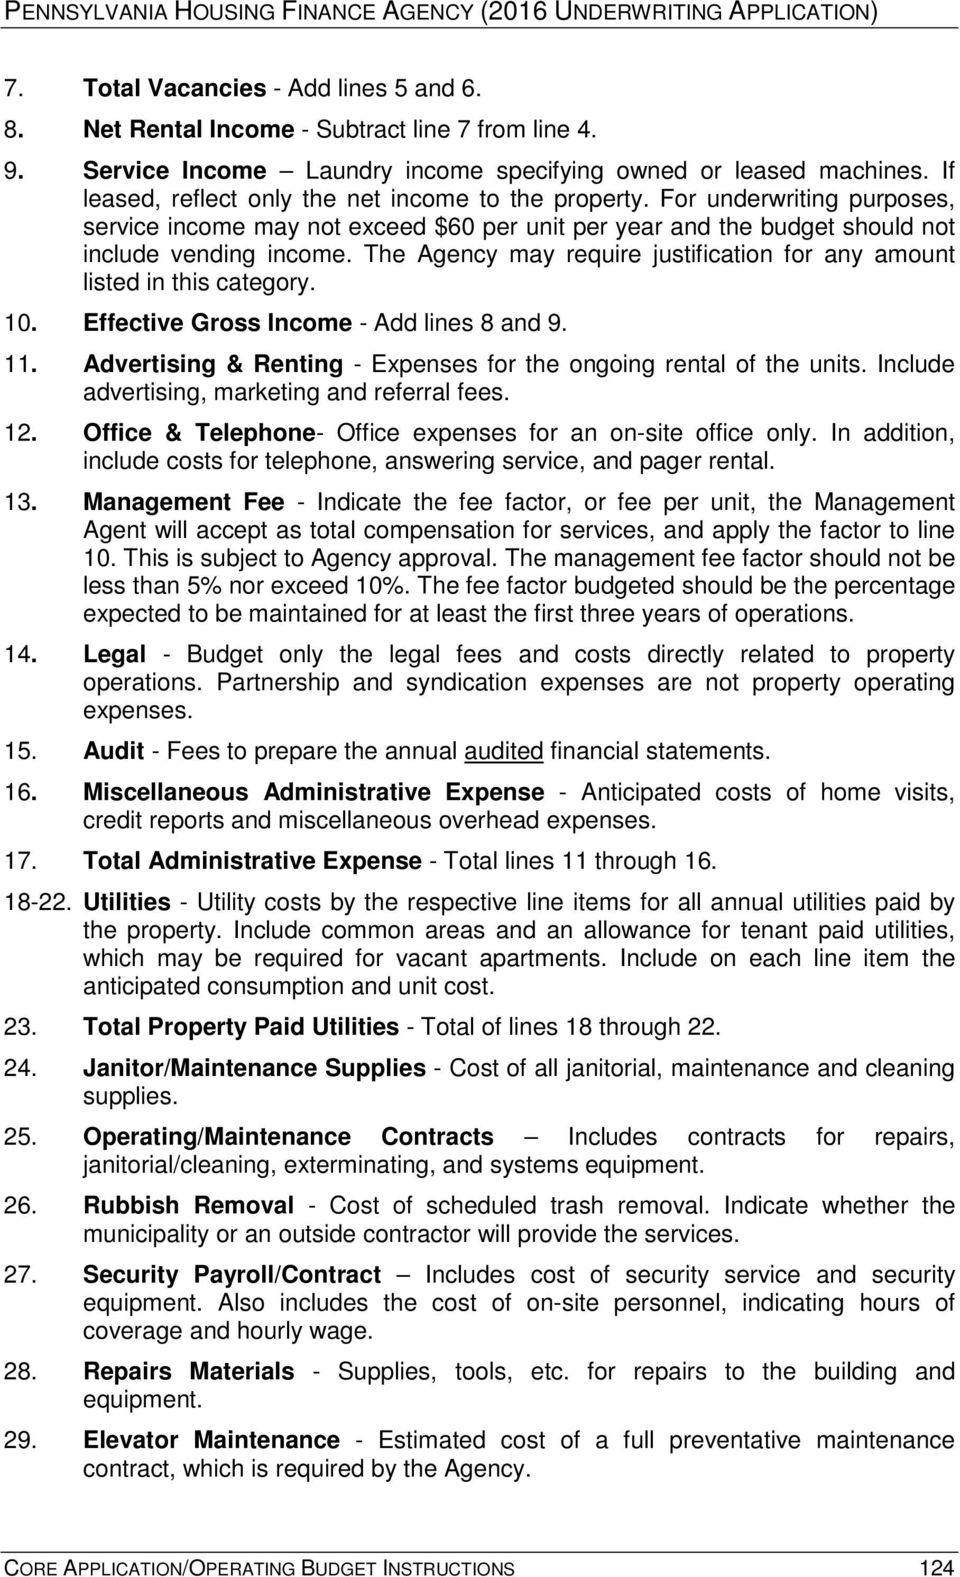 The Agency may require justification for any amount listed in this category. 10. Effective Gross Income - Add lines 8 and 9. 11. Advertising & Renting - Expenses for the ongoing rental of the units.